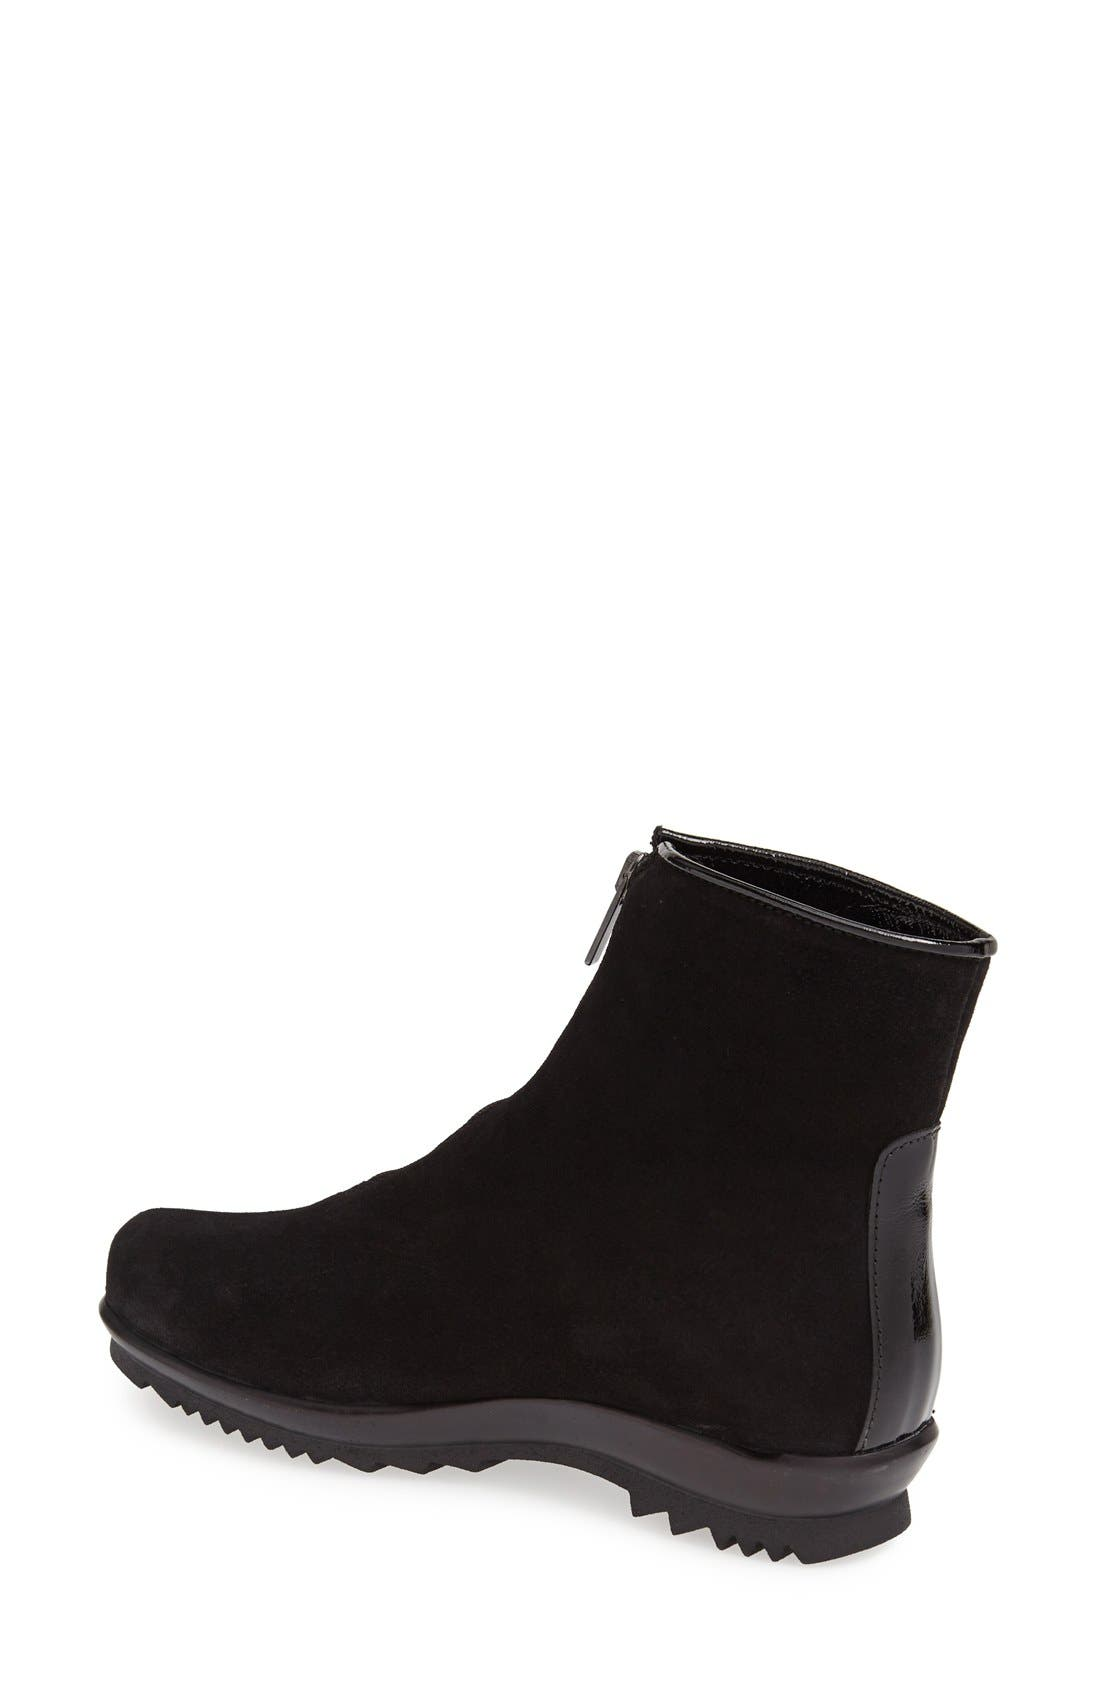 'Tiana' Weatherproof Boot,                             Alternate thumbnail 2, color,                             Black